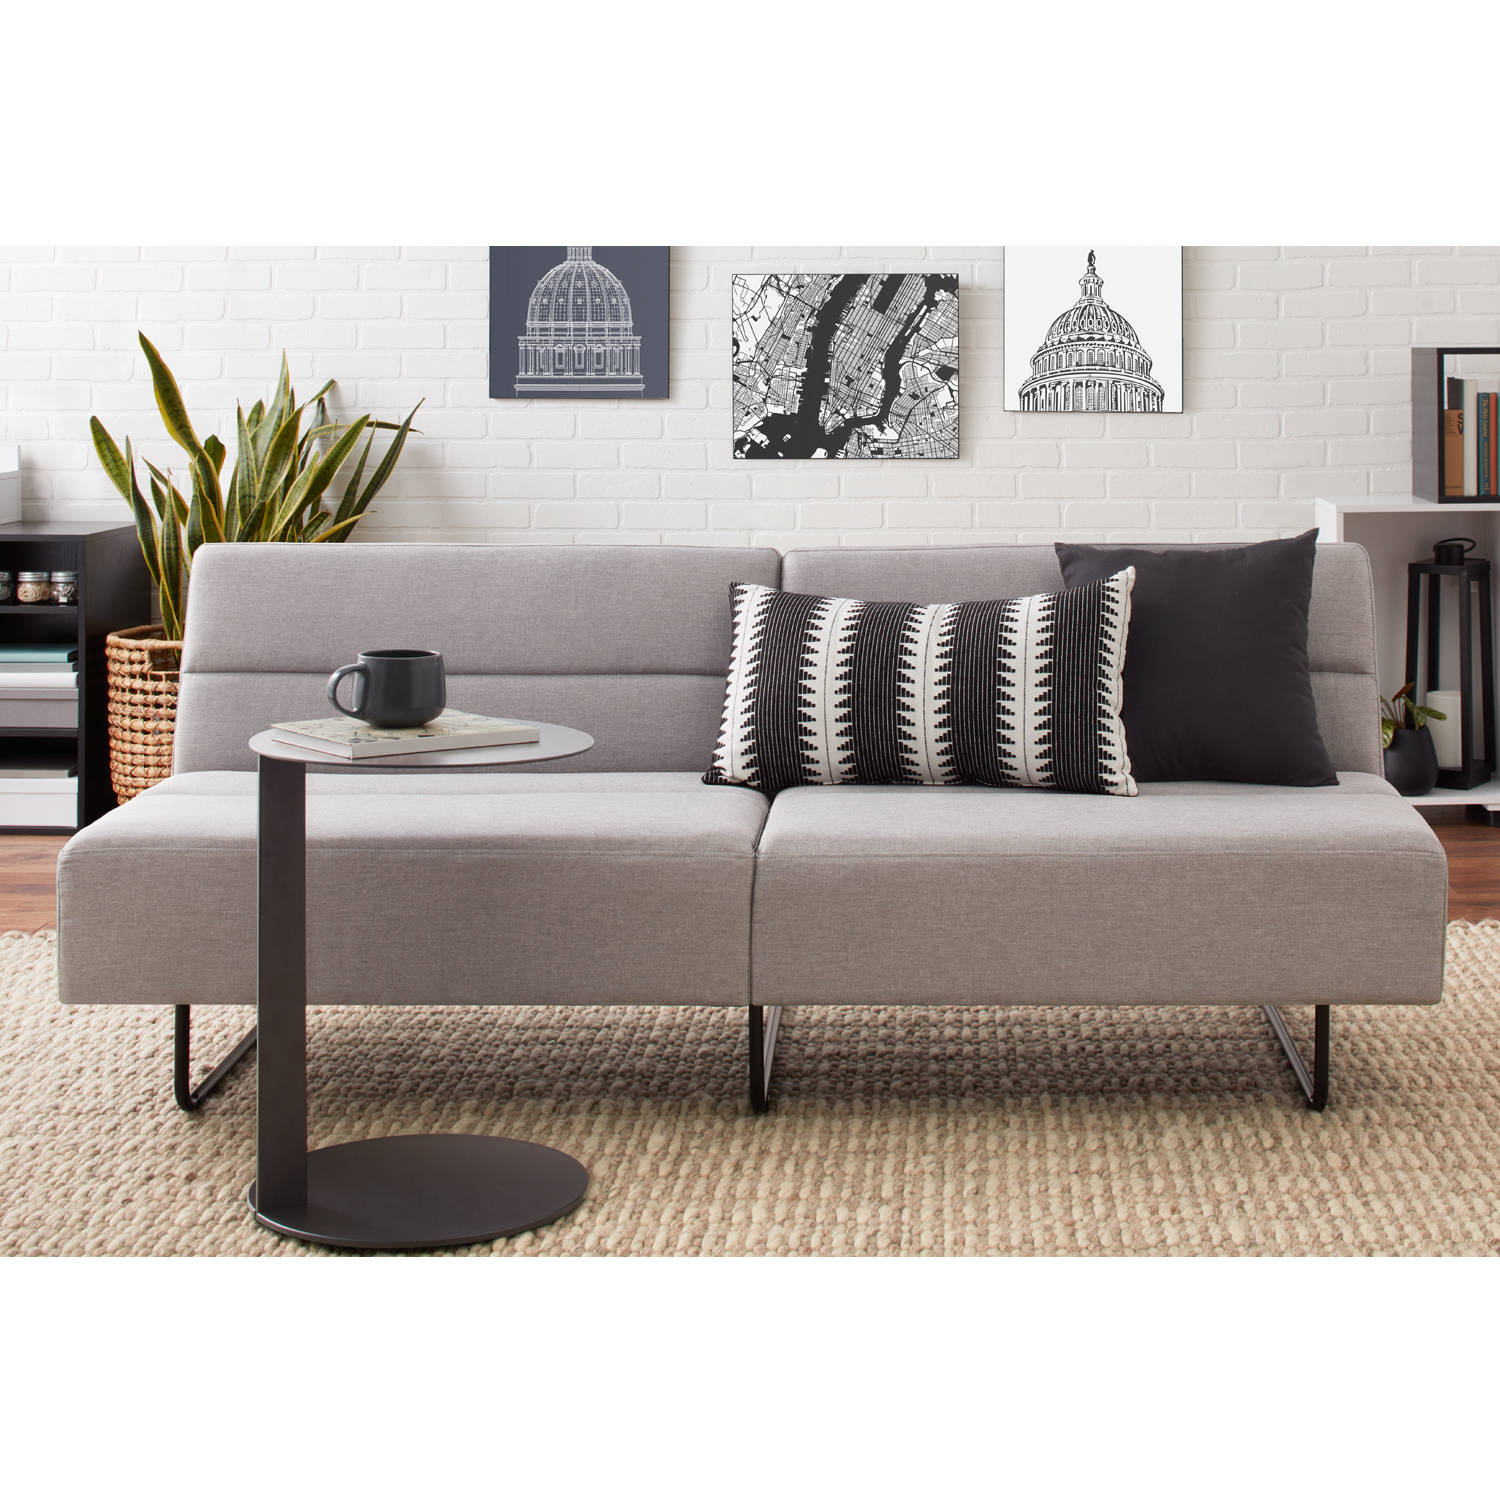 Charming Mainstays Fulton Sofa Bed, Multiple Colors